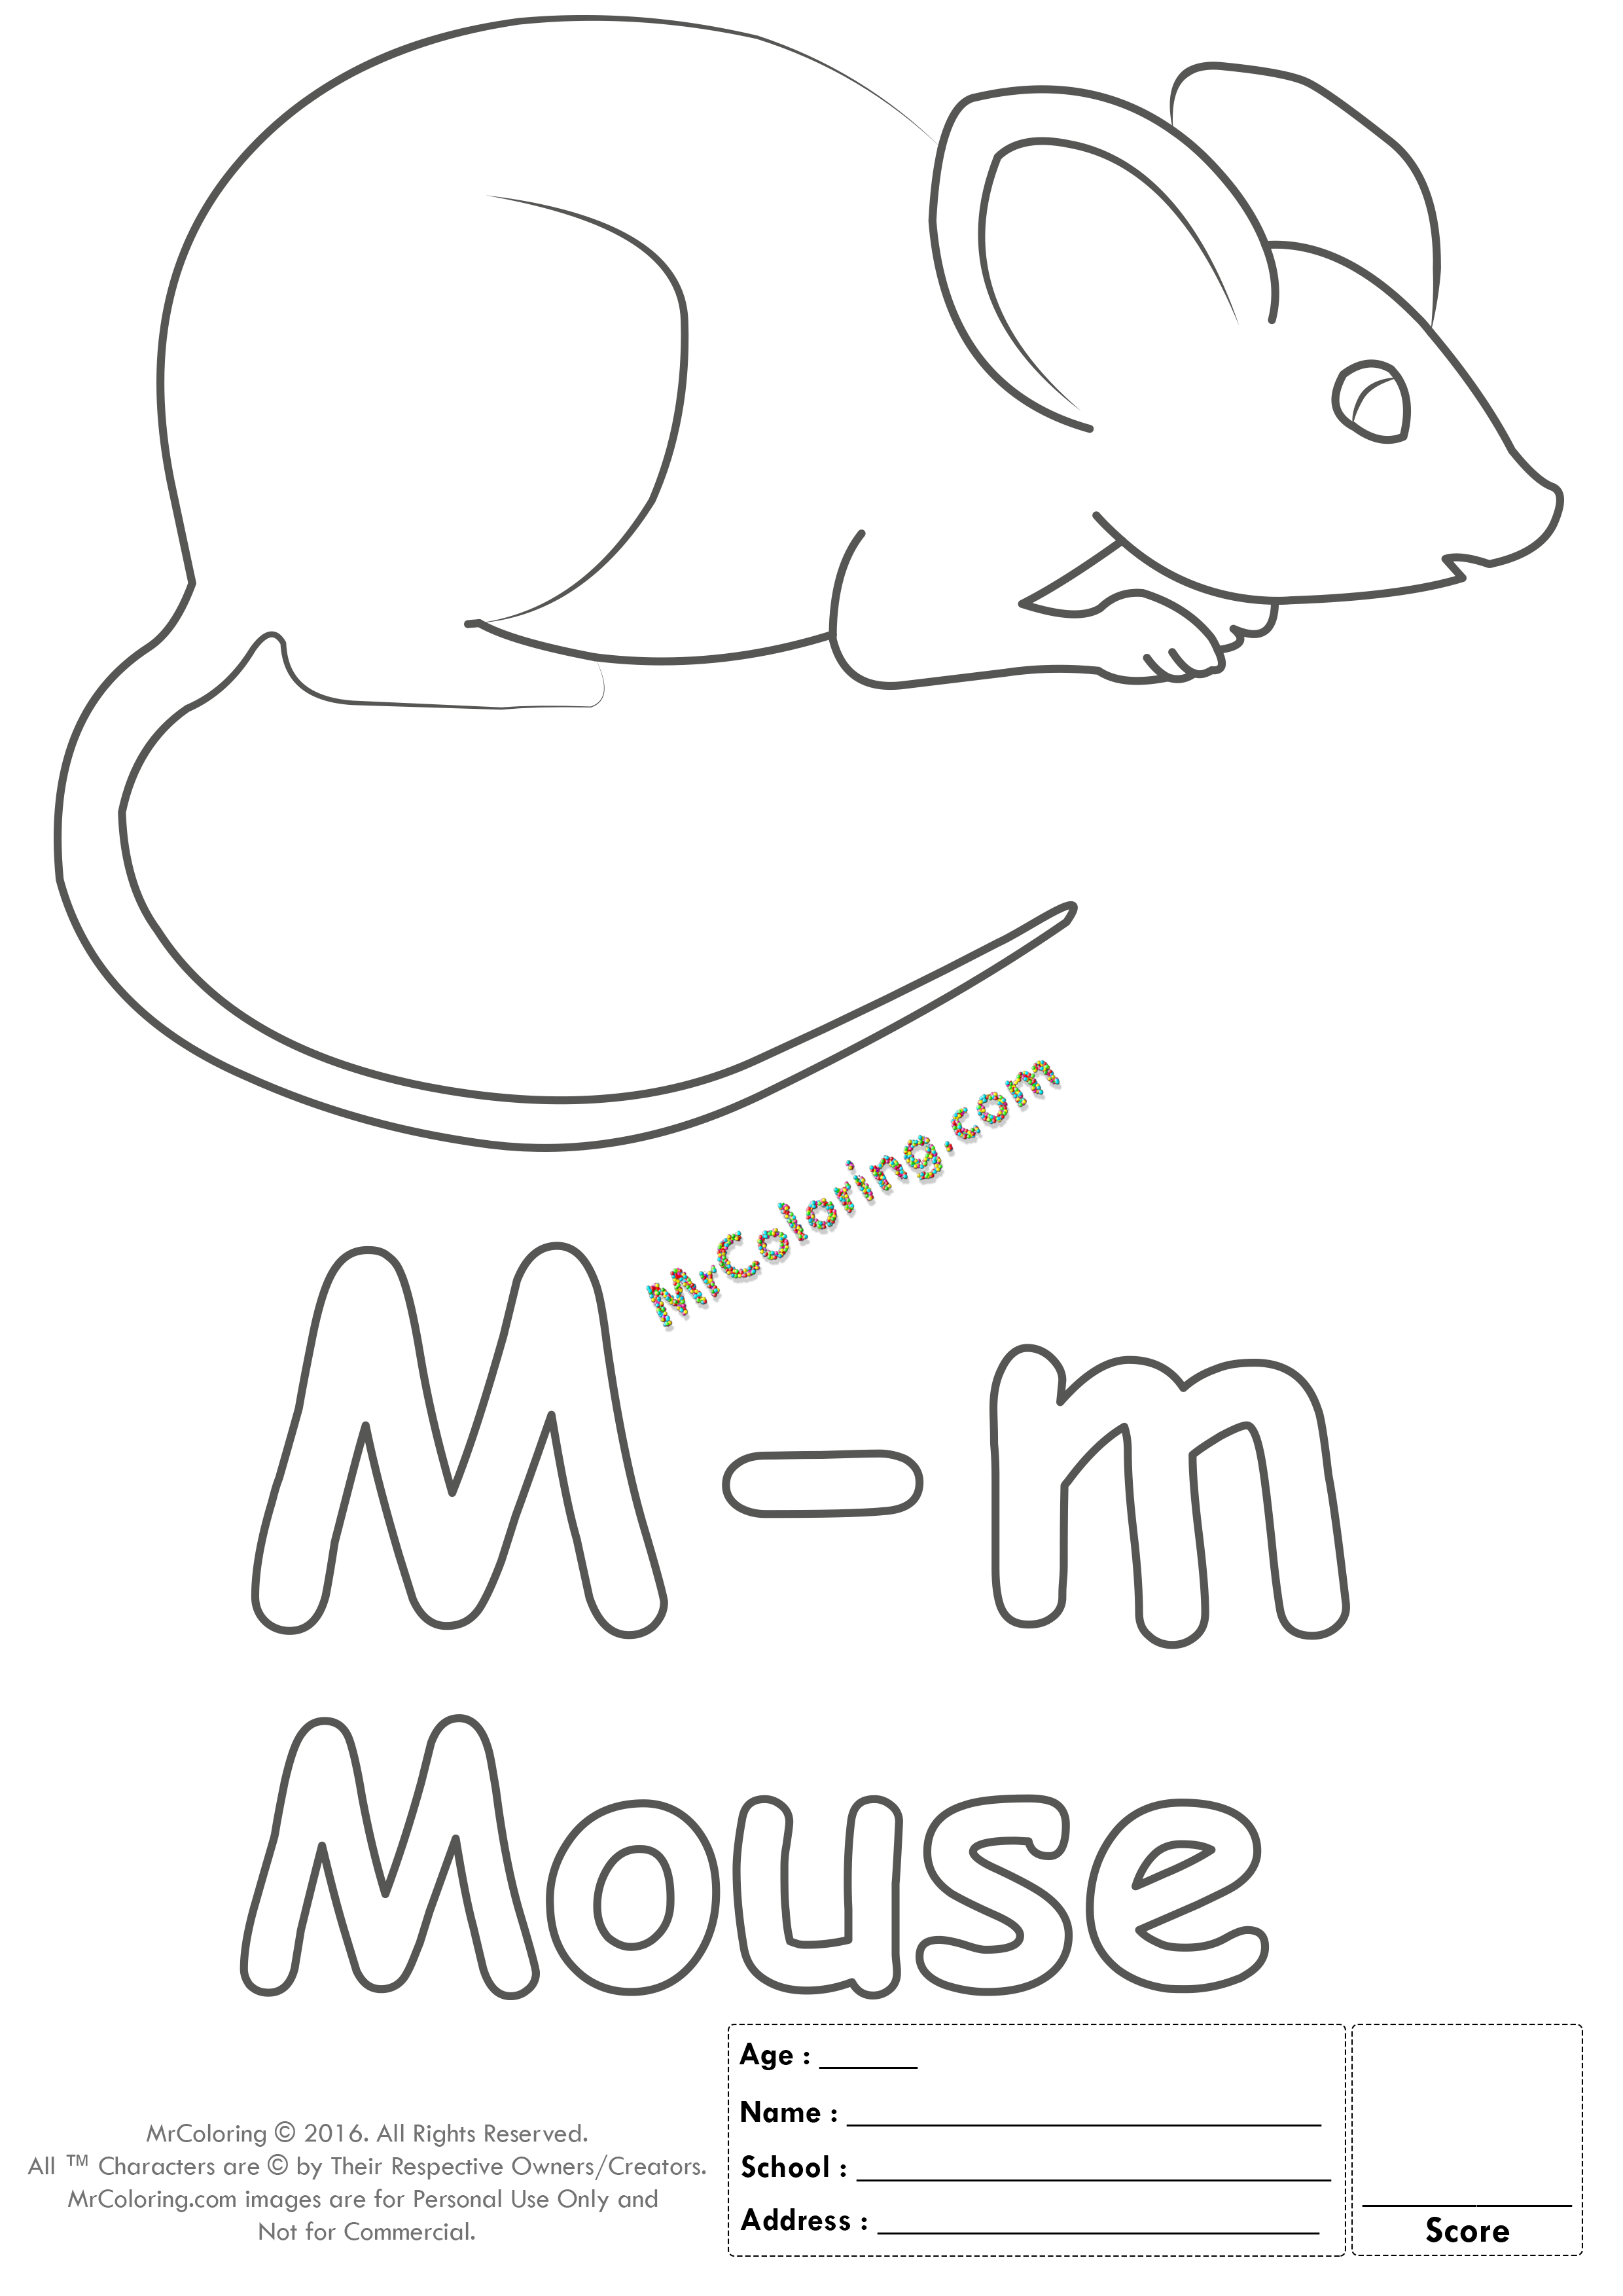 Alphabet Letter Mm Coloring Pages Coloring Worksheets Coloring Books Uppercase Lowercase And